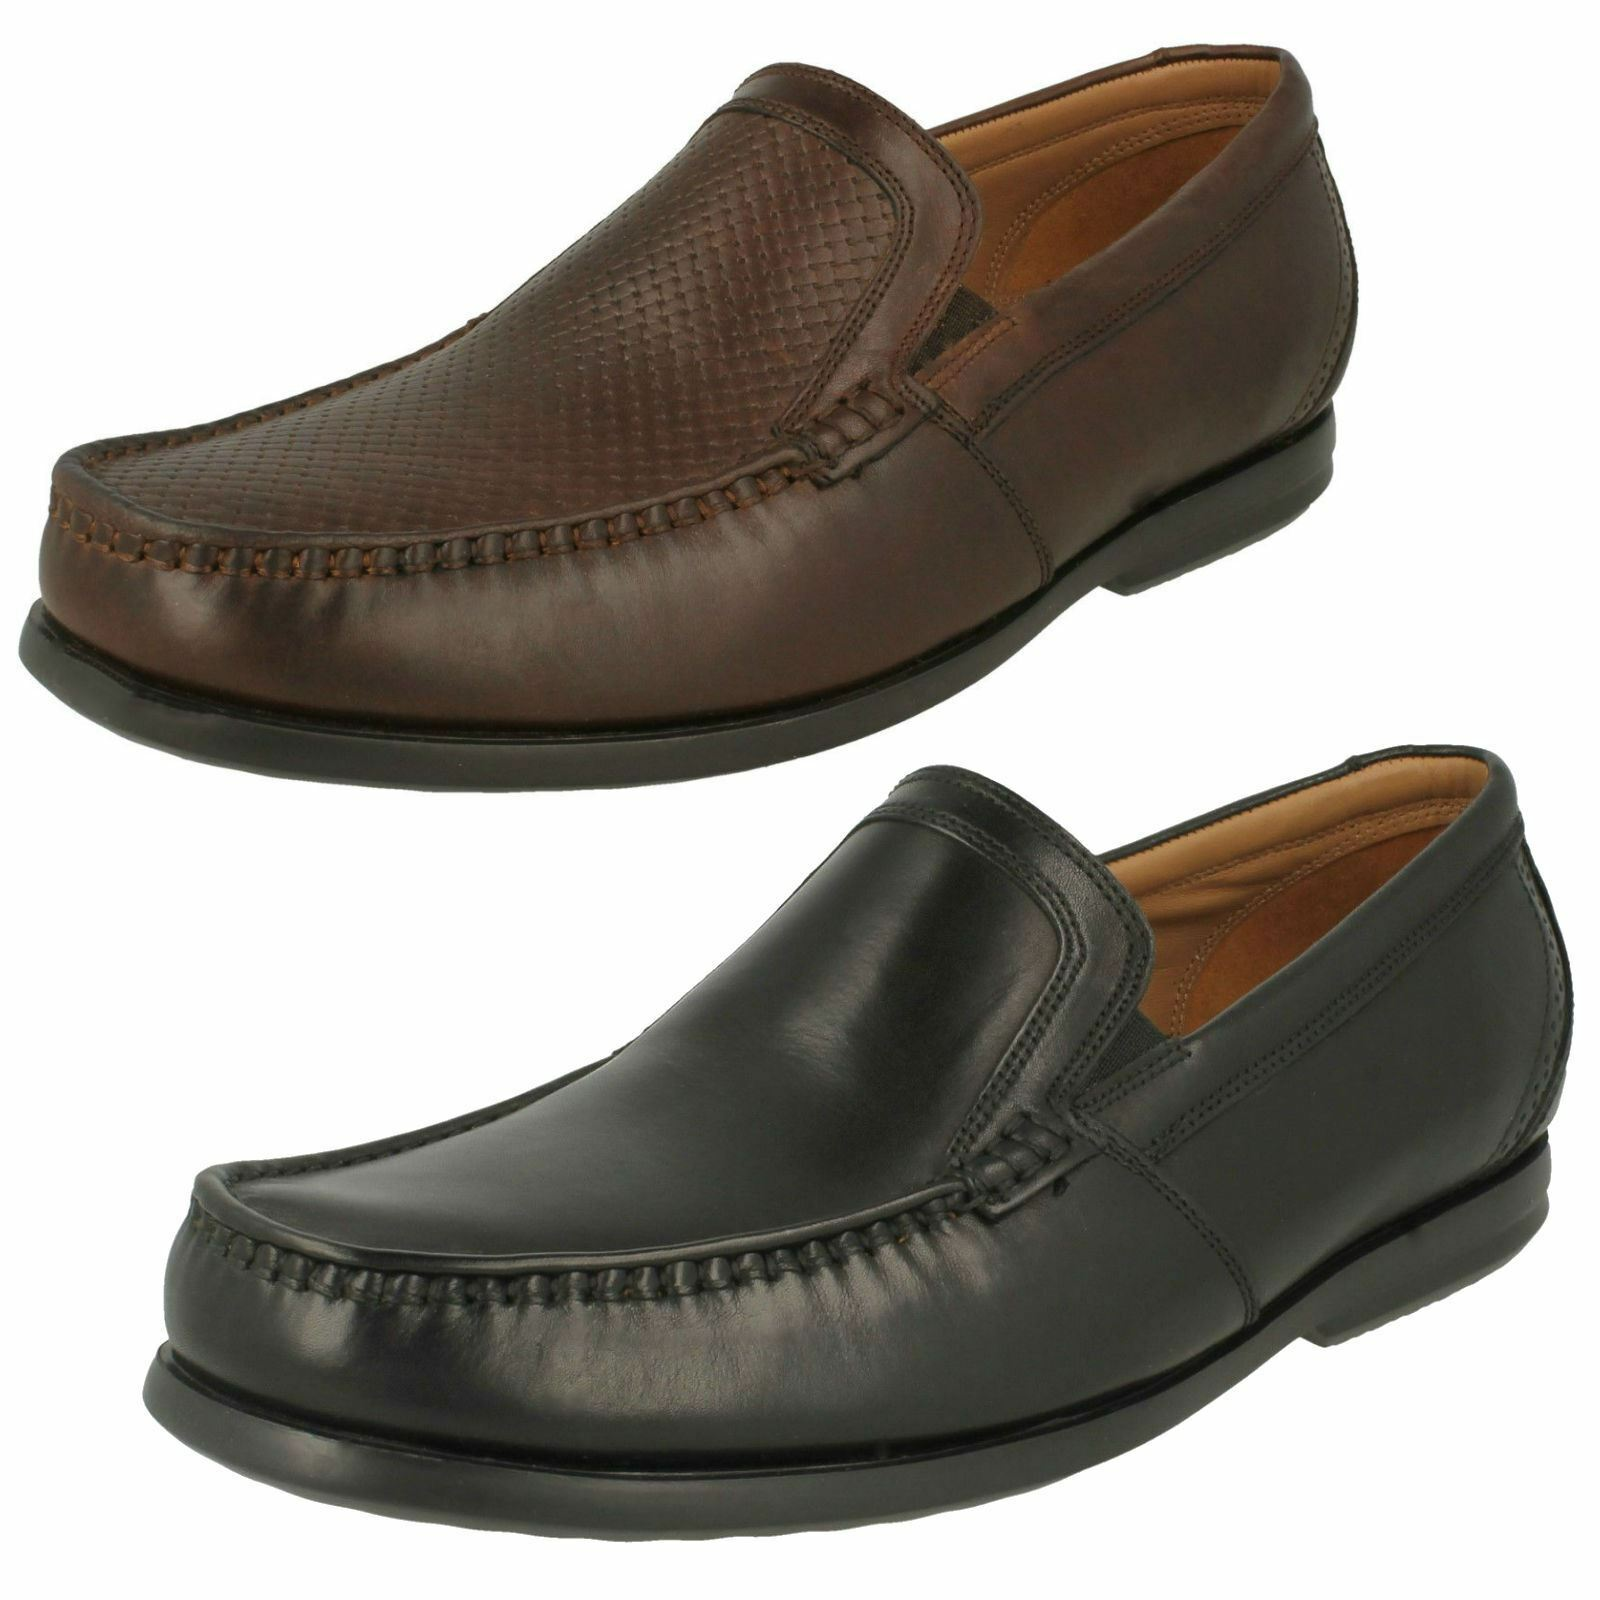 Mens Clarks Slip On Formal Loafers - Un Gala Free